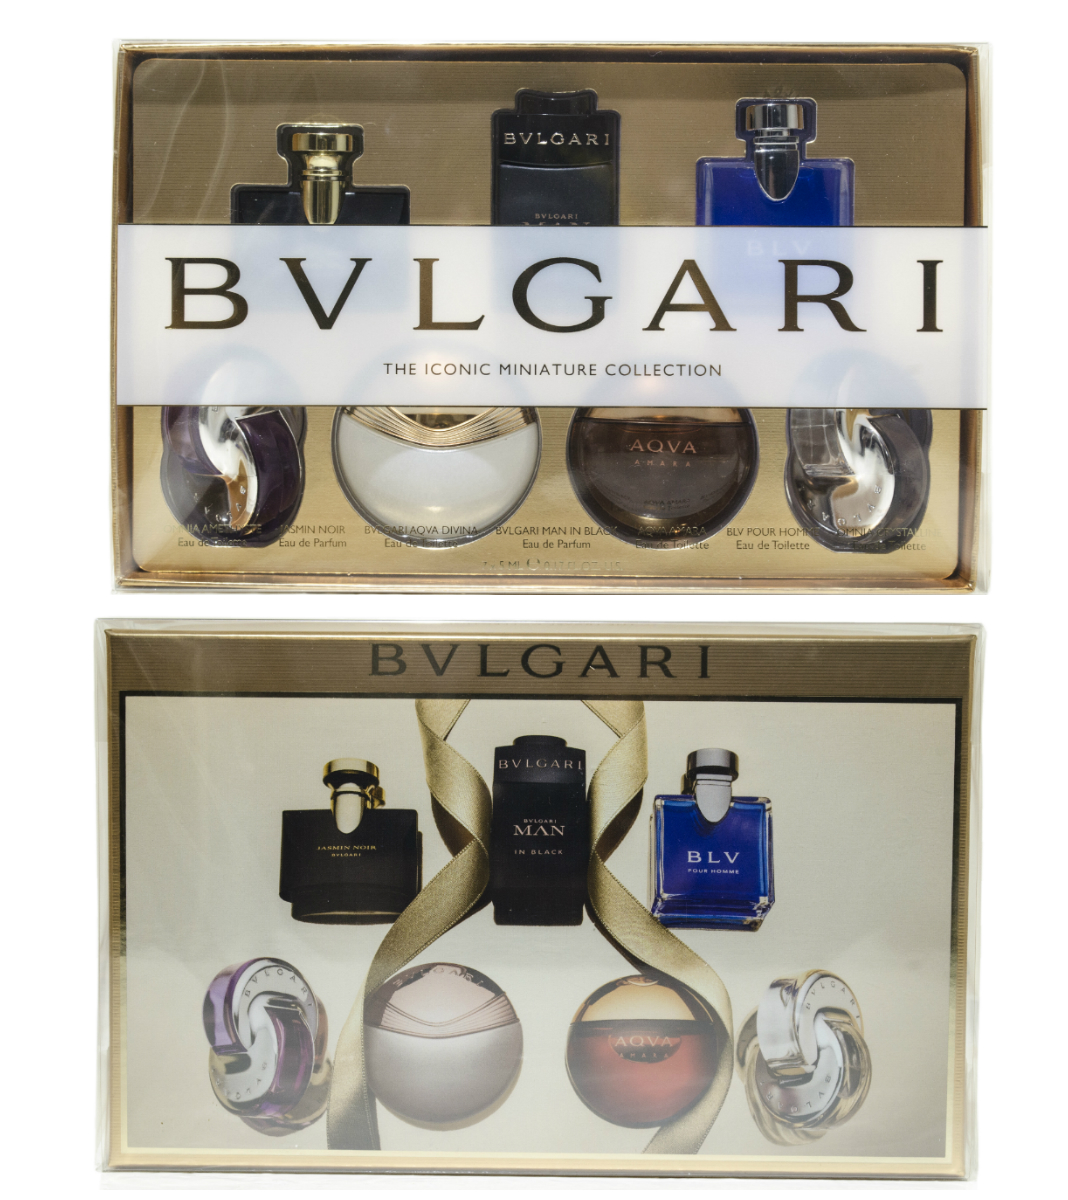 ... piece miniaturecollection evokes prestige and elegance.Perfect for  gifting purposes. This Exclusive set consist of  - Omnia Amethyste by  Bvlgari 5ml Edt 9f5997c7e0b